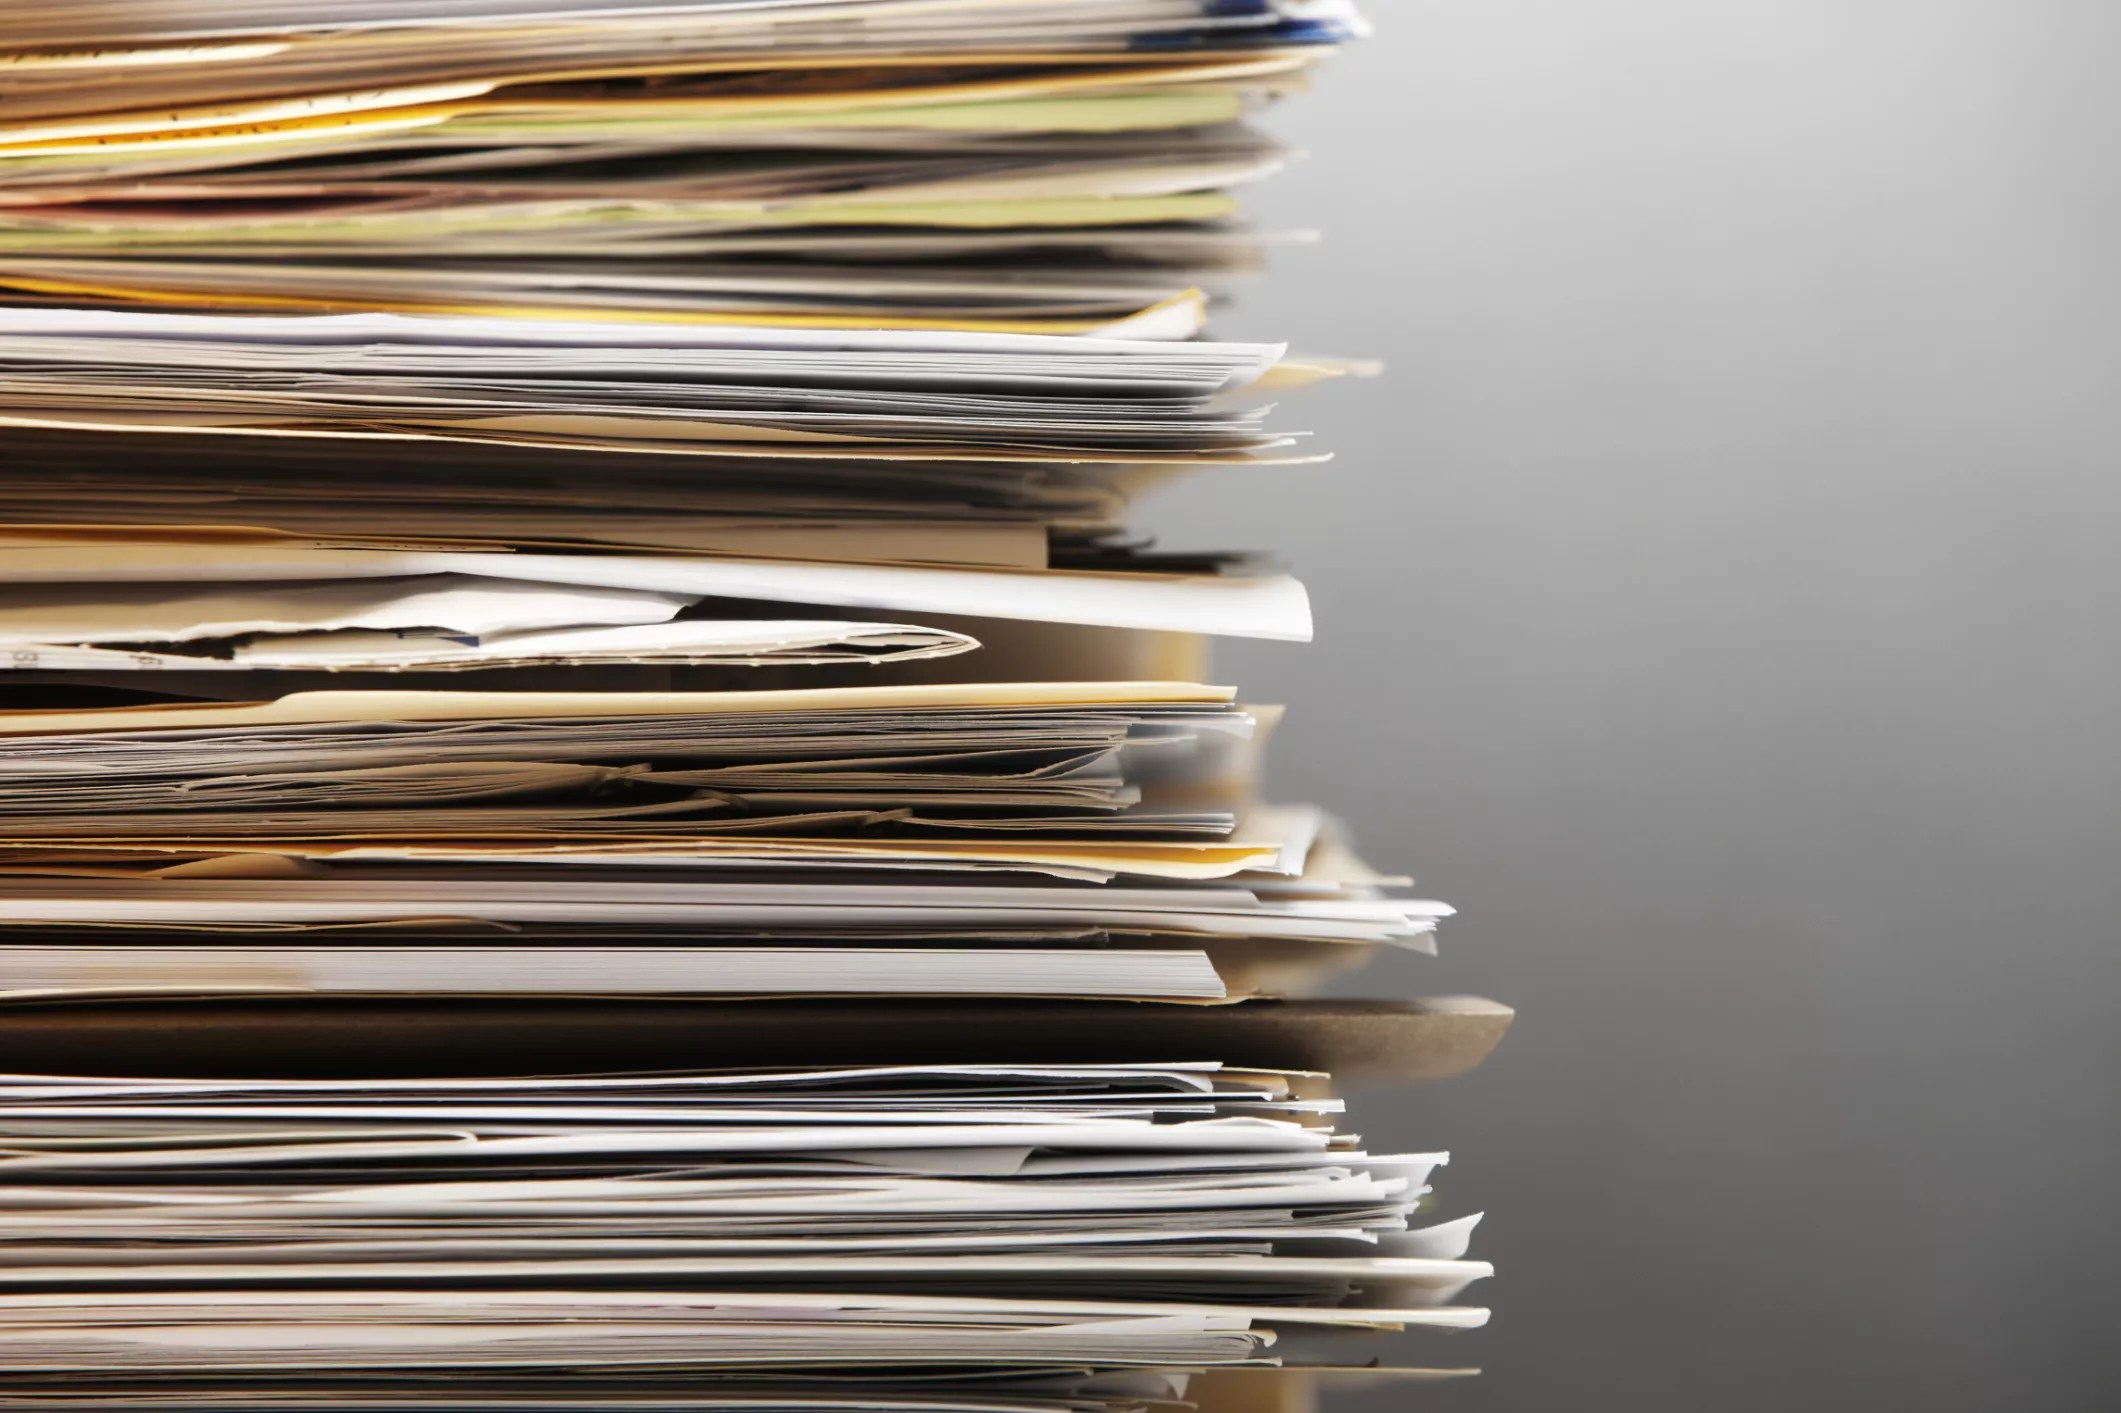 Photo of a stack of files and paper - The Internet Tips